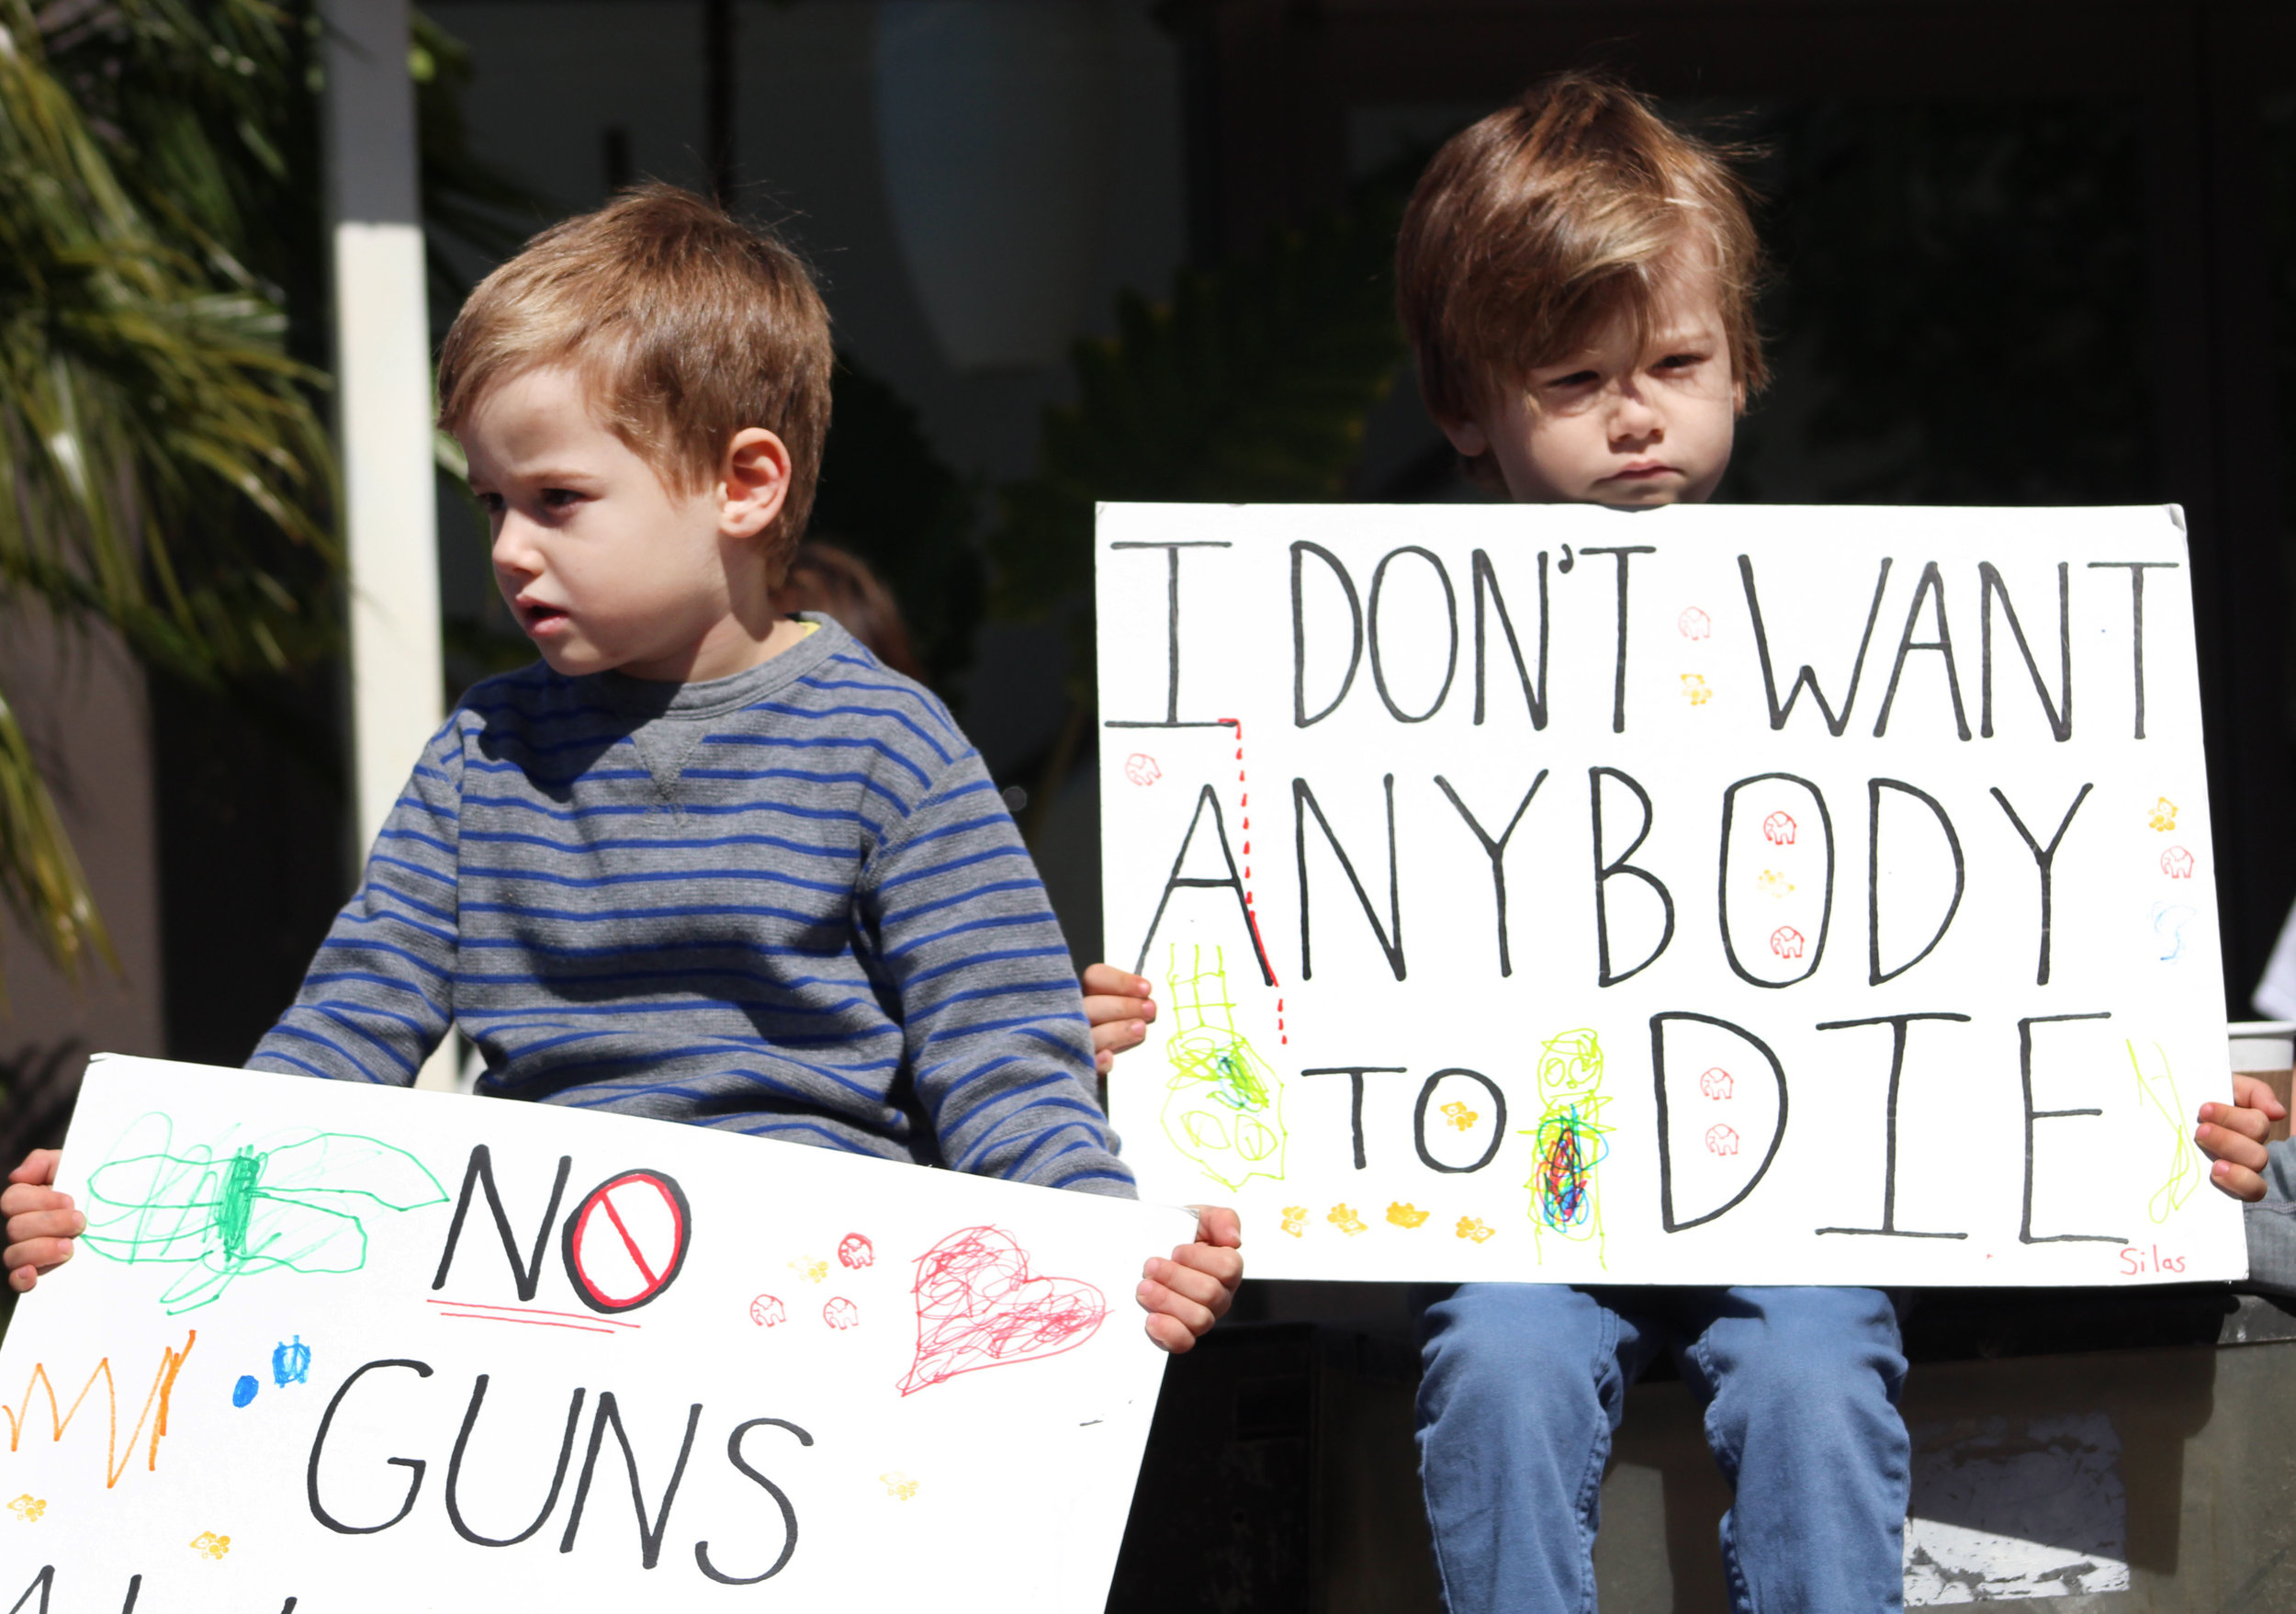 The brothers Wyatt (left) and Silas (right) Doskow sit and watch the crowd of protestors make their way back up Montana Avenue during the March for Our Lives protest. Saturday, March 24, 2018, in Santa Monica, California. (Pyper Witt/Corsair Photo)